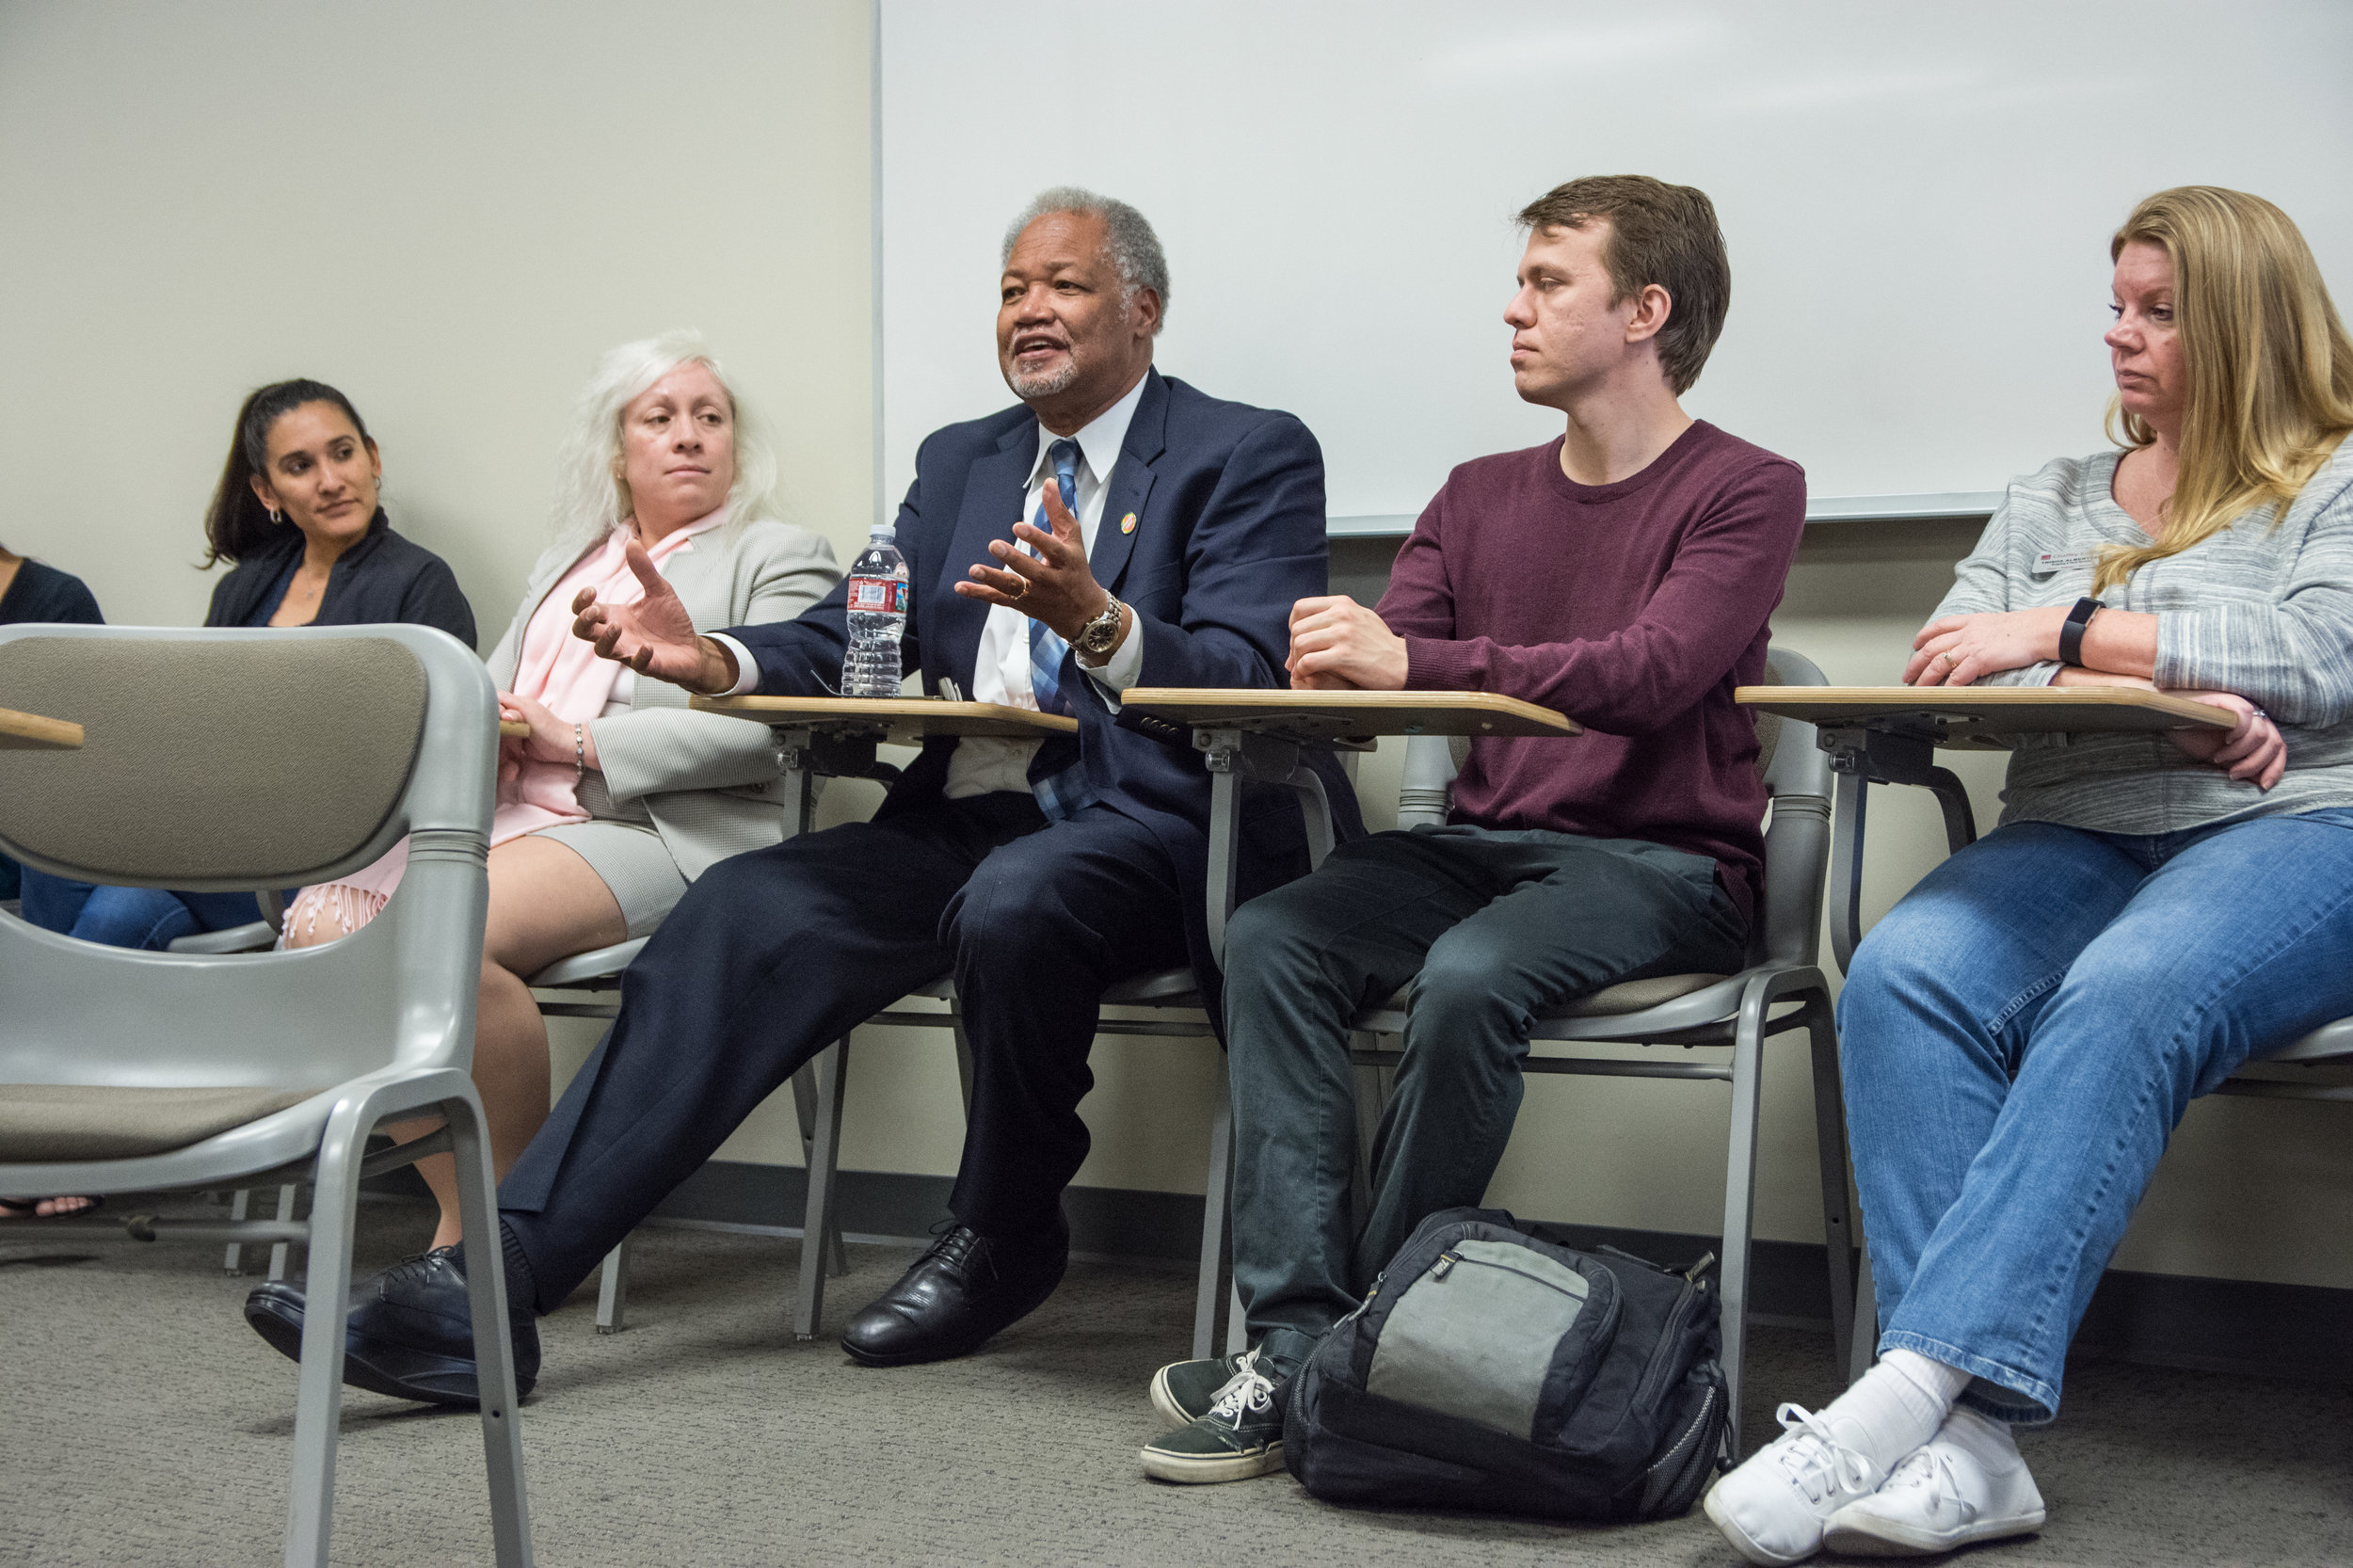 Superintendent Henry Shannon gives his perspective growing up under Jim Crow in the south. Photo by Jeanine Hill.